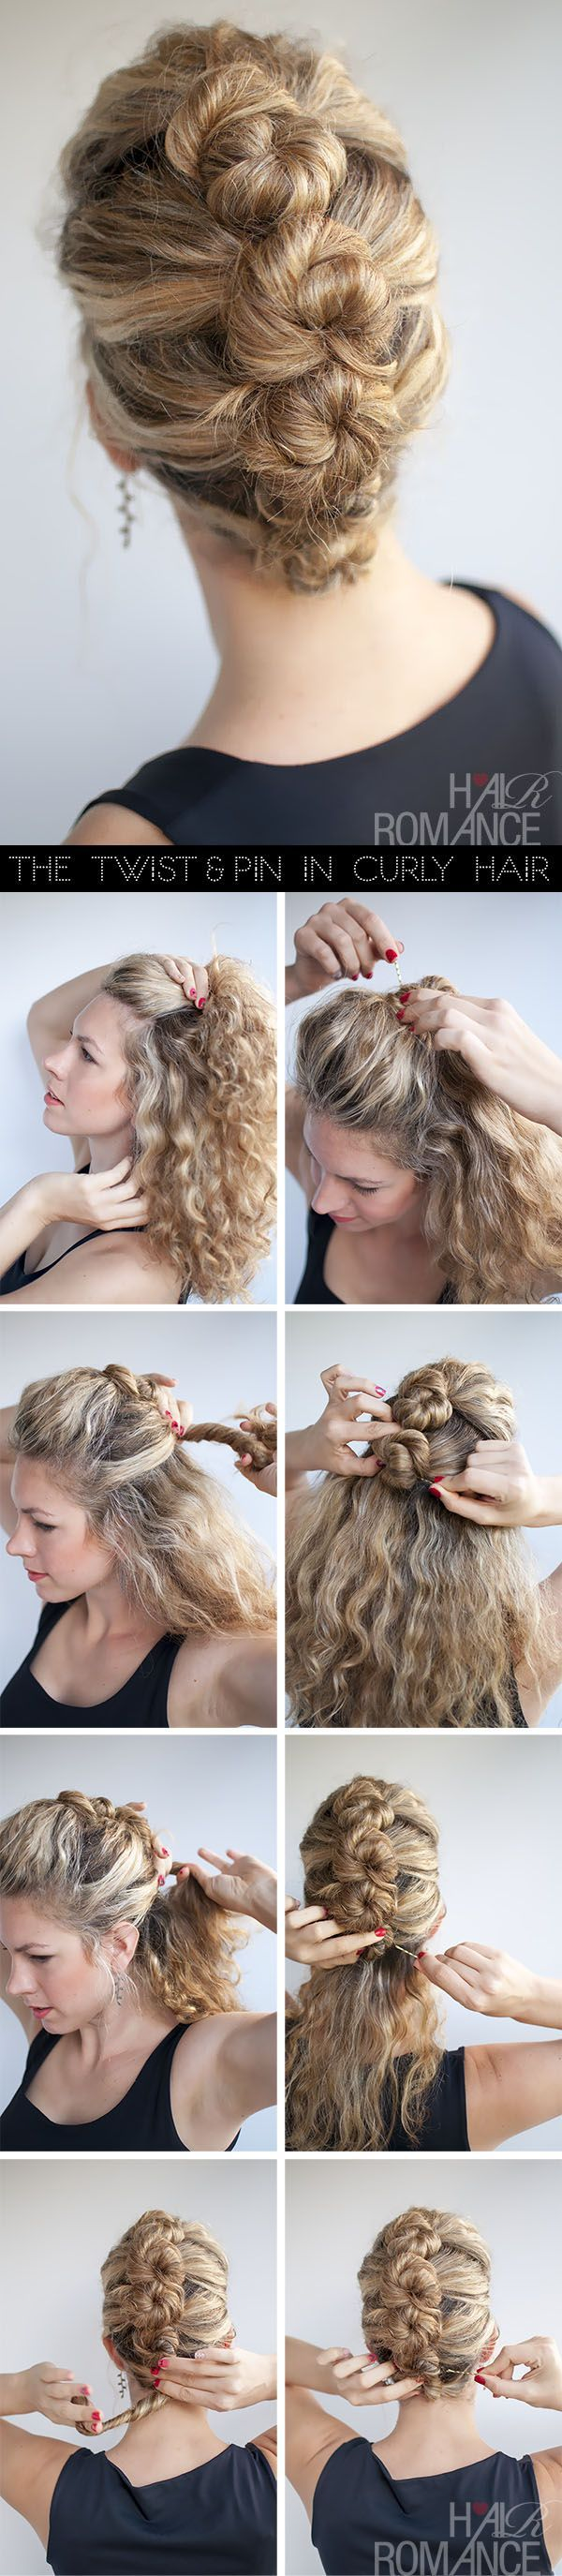 Hair Romance hairstyle tutorial - The French Twist and Pin in curly hair -- I could only wish for hair this thick and lovely.  My hair and this style would look like I had blonde pimples on my head.  :